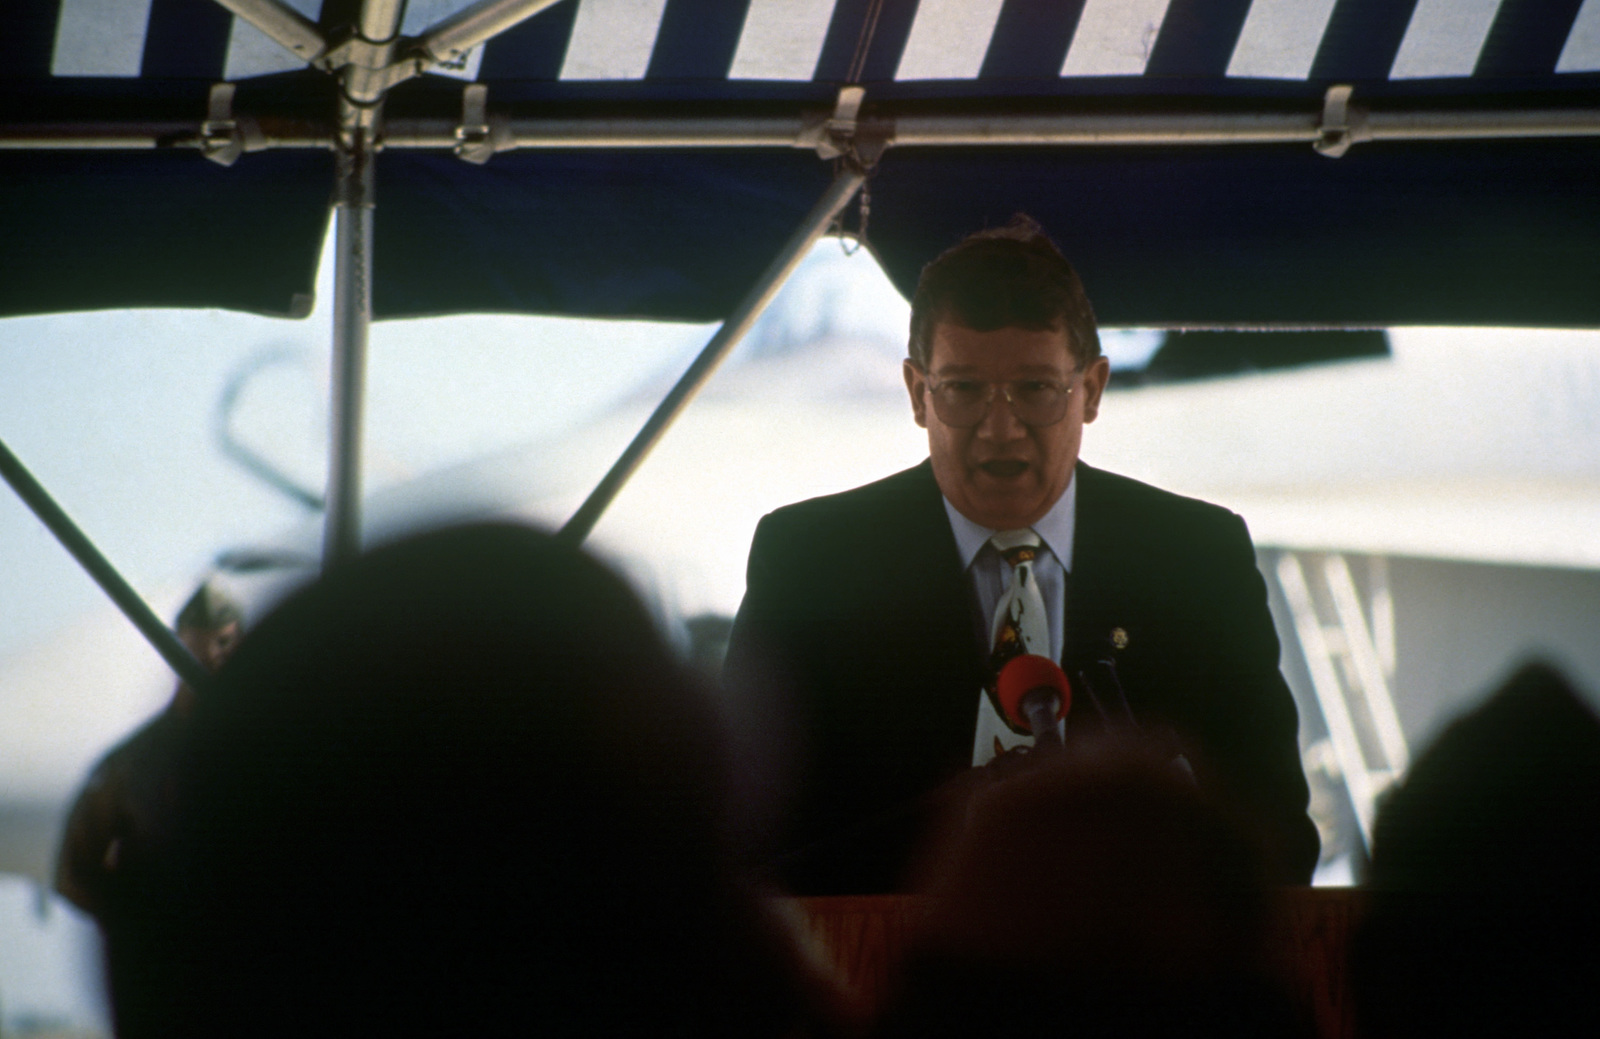 Representative Randy (Duke) Cunningham (R-California) addresses the audience during the ceremony welcoming Marines to their new home at Naval Air Station (NAS) Miramar, California (CA)